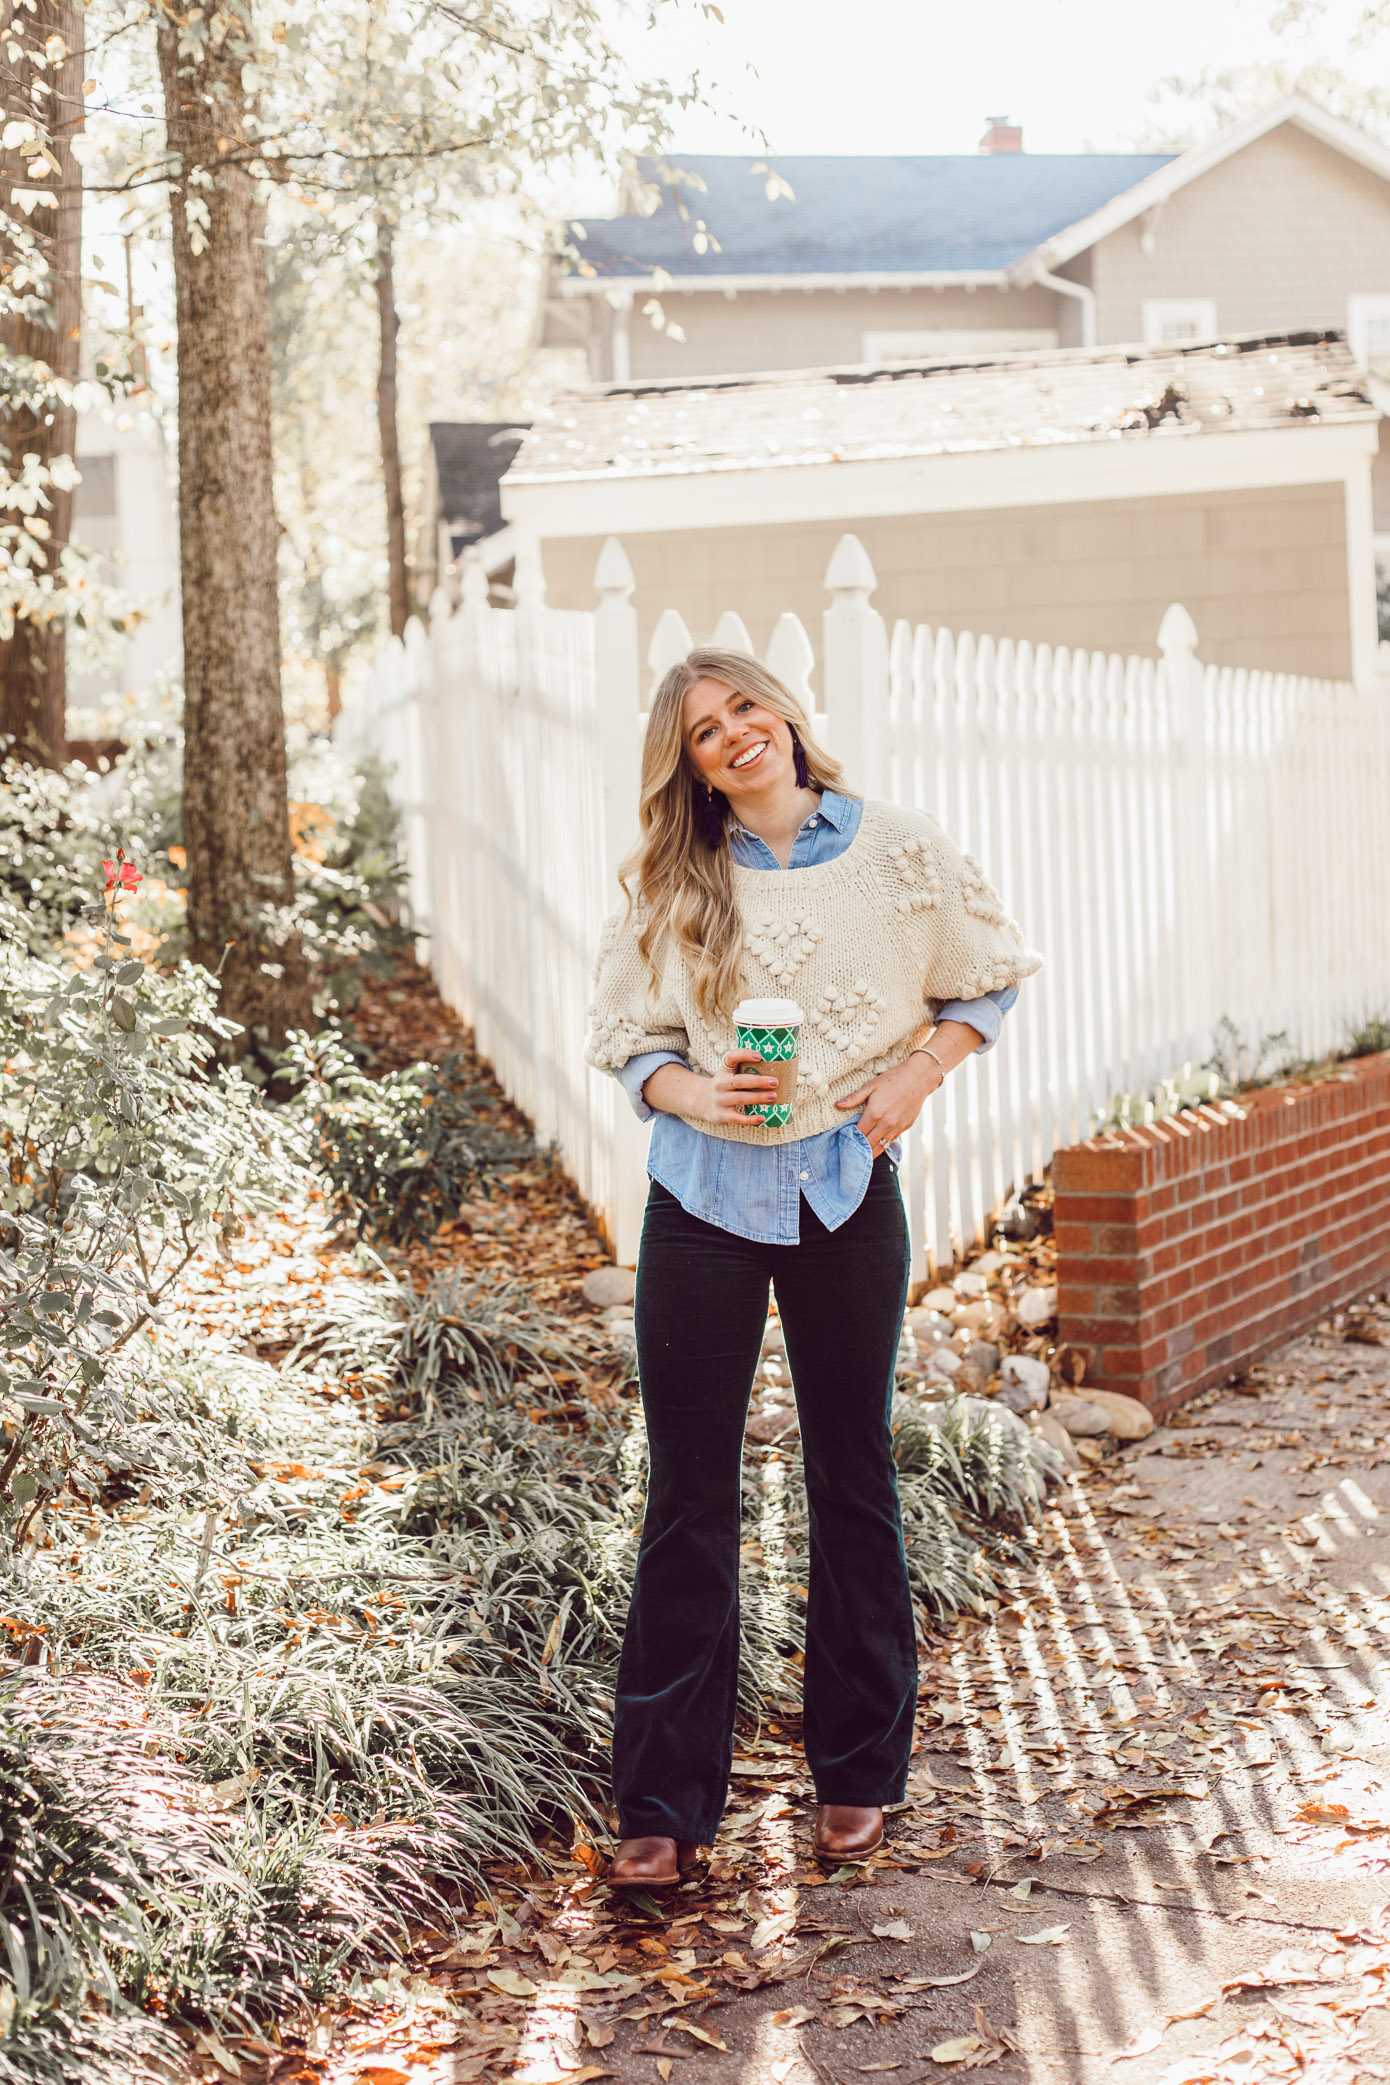 Callahan Pommed Heart Sweater, Styling Corduroys for Winter | Must Try Winter Trend featured on Louella Reese